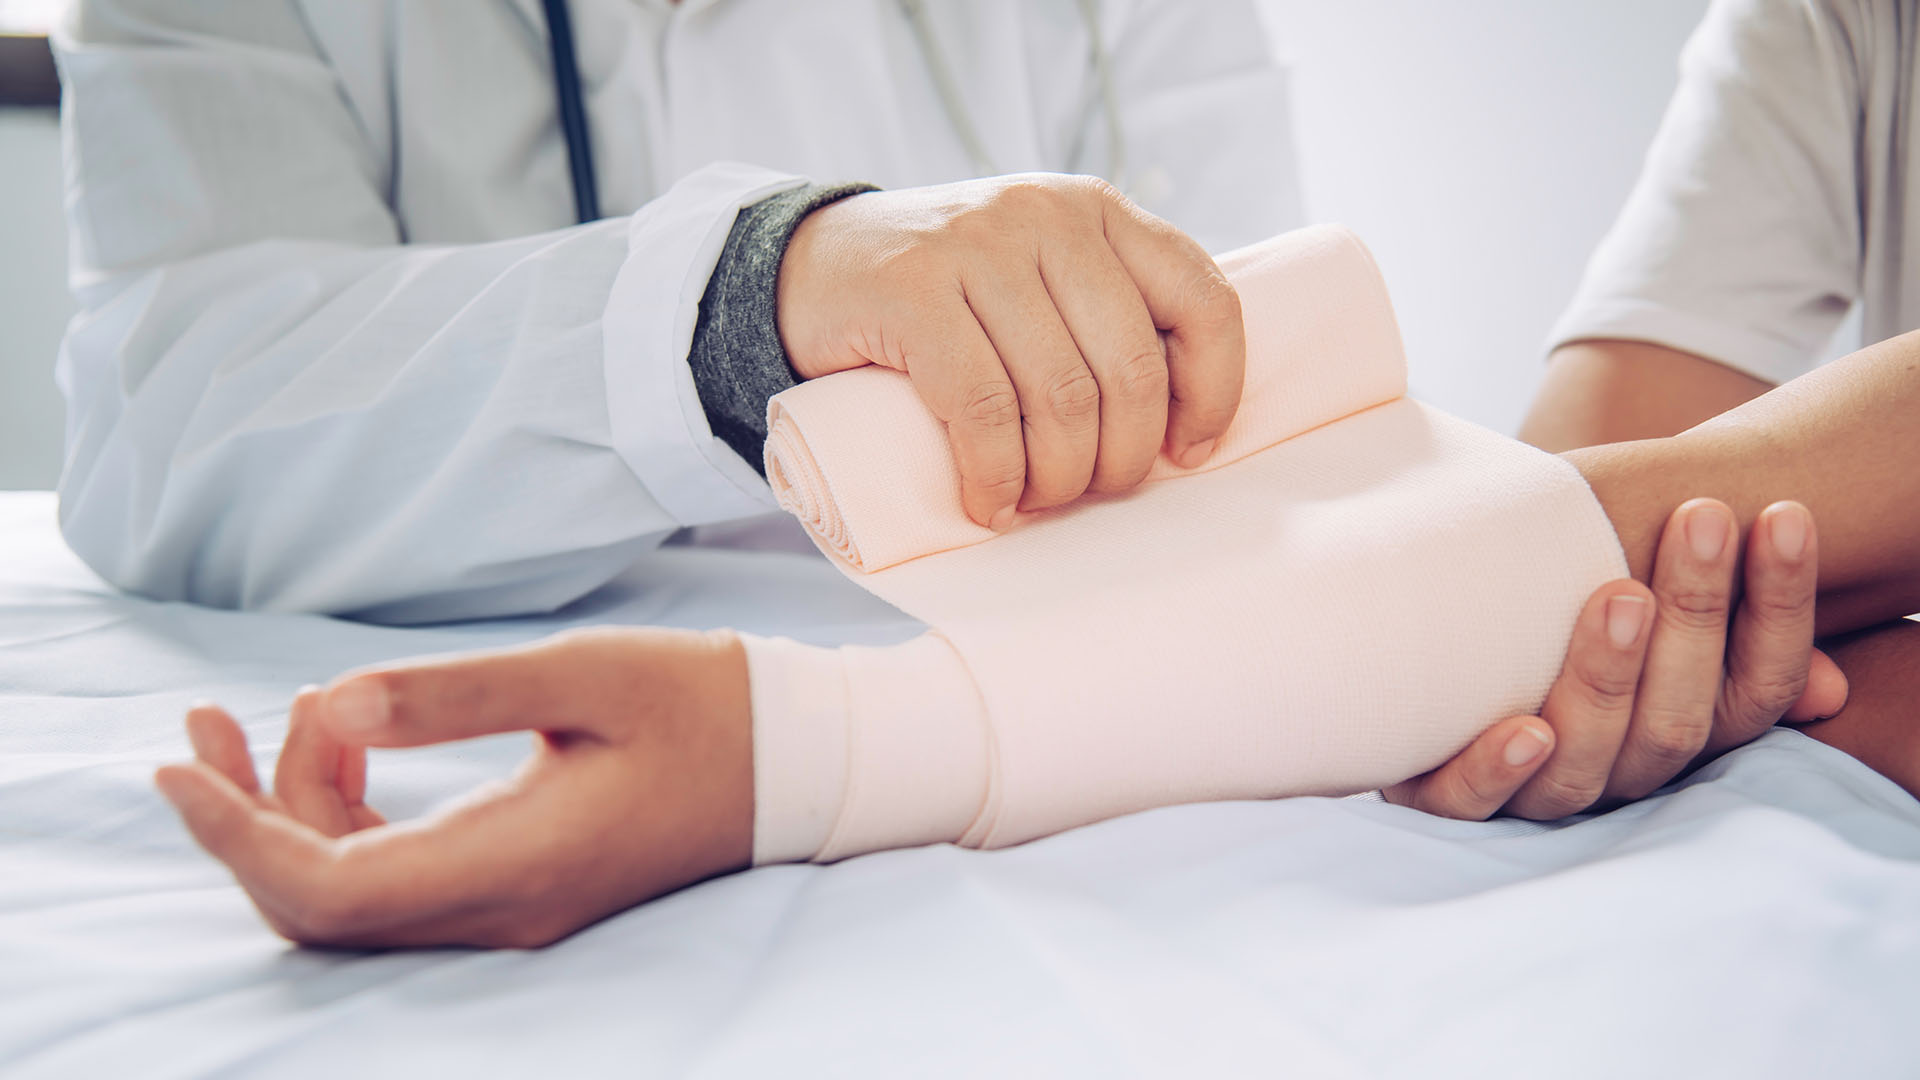 doctor wraps a burn injury on patients arm